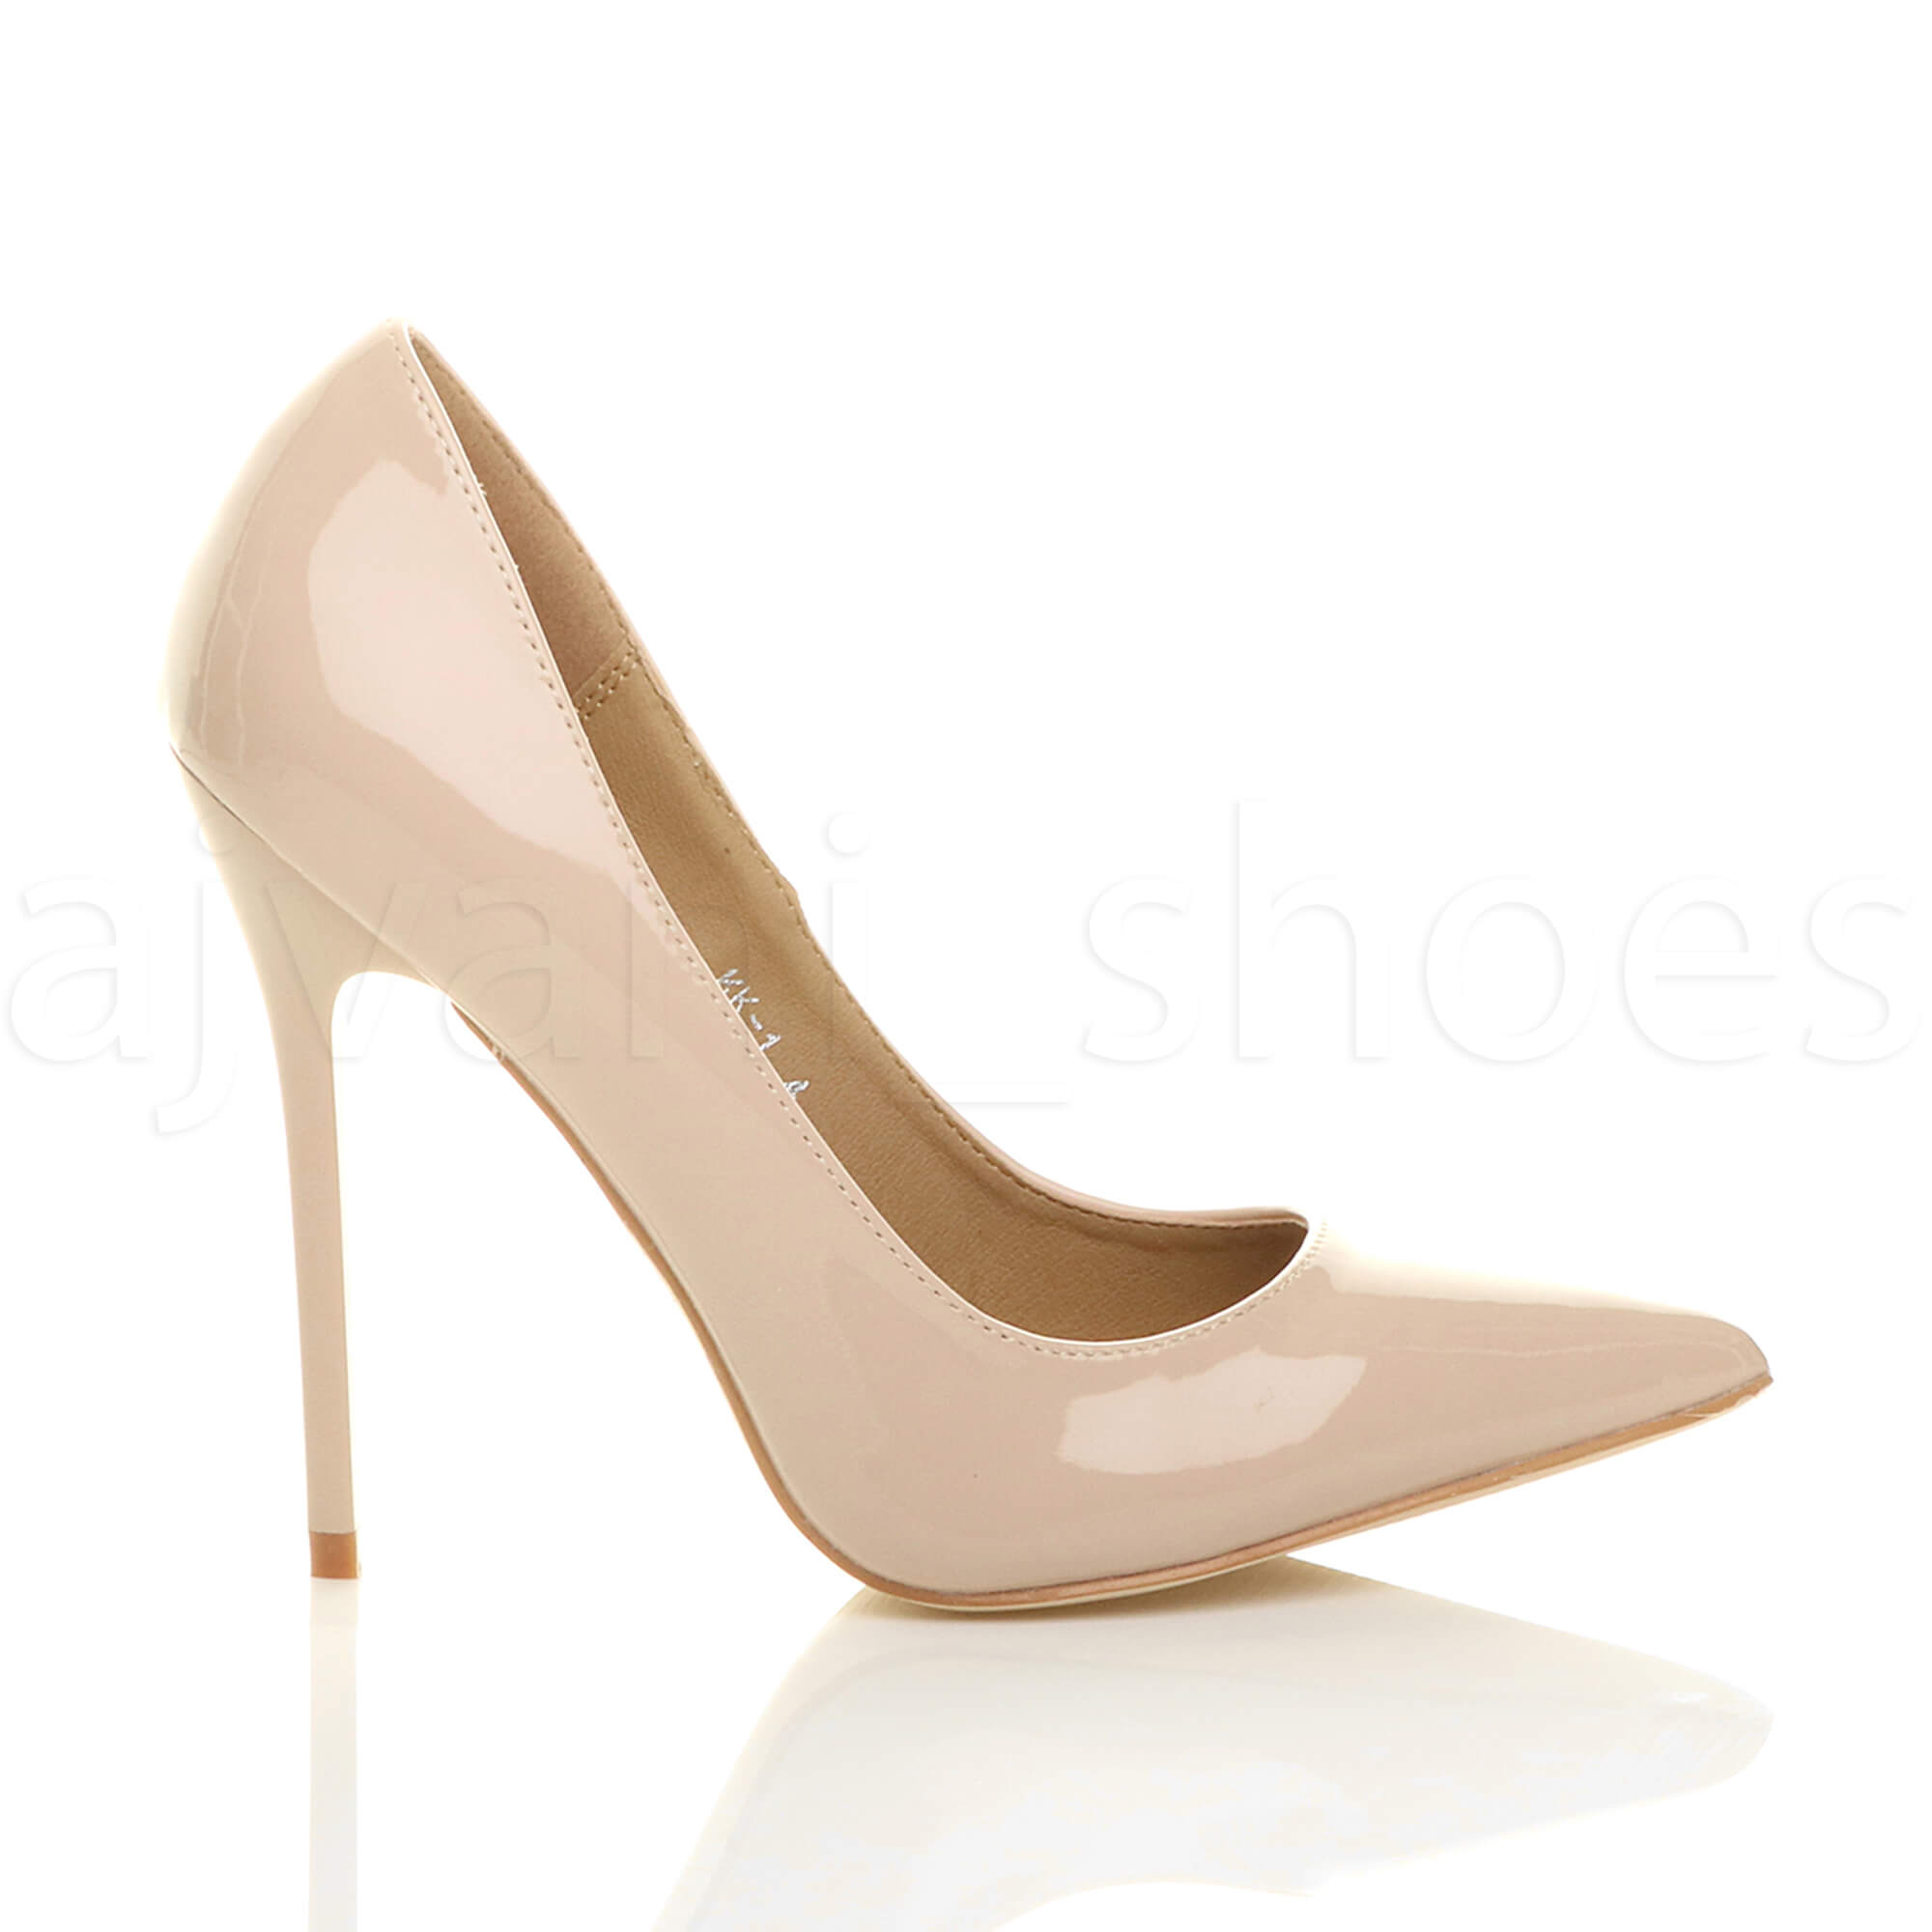 3527913b79051 WOMENS LADIES HIGH HEEL POINTED CONTRAST COURT SMART PARTY WORK ...